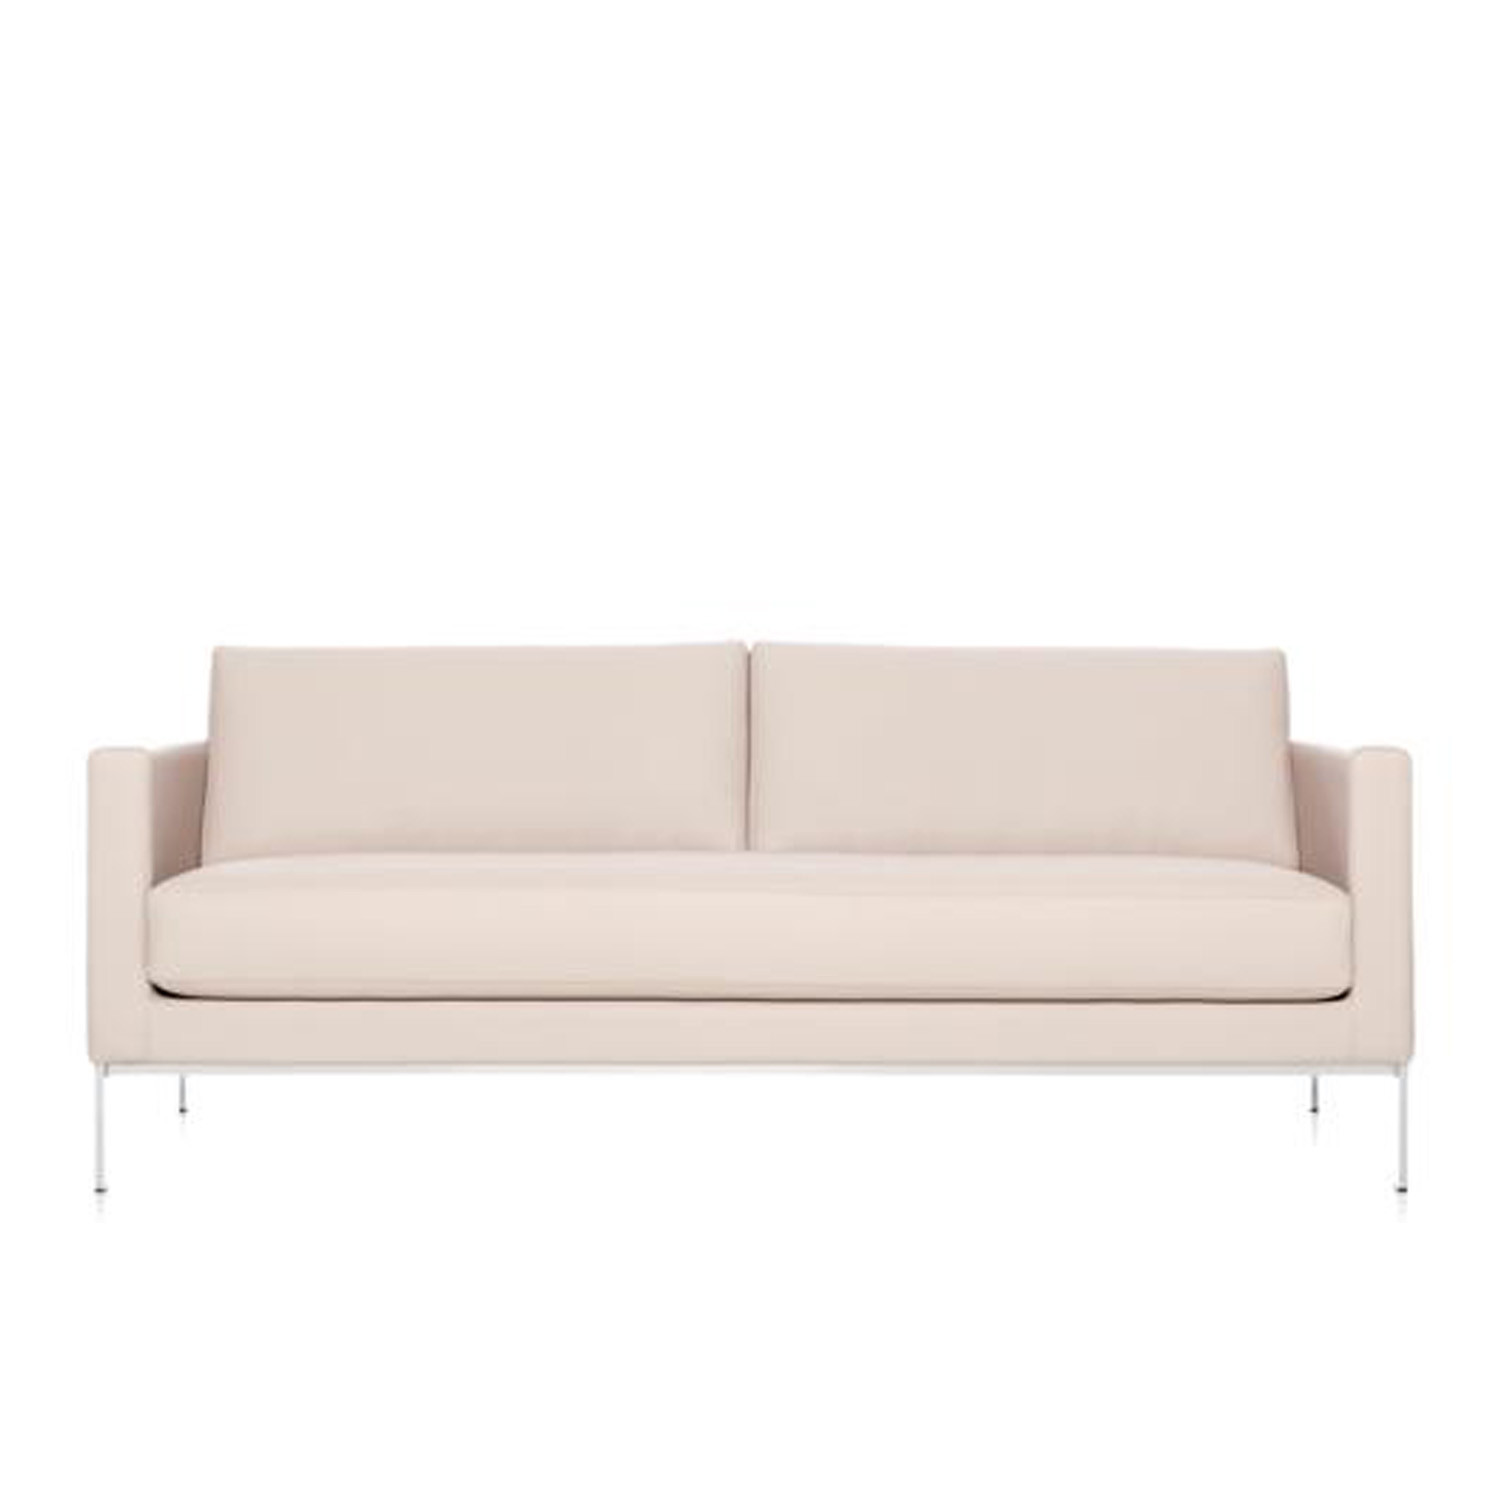 Avenue 4 Seater Sofa